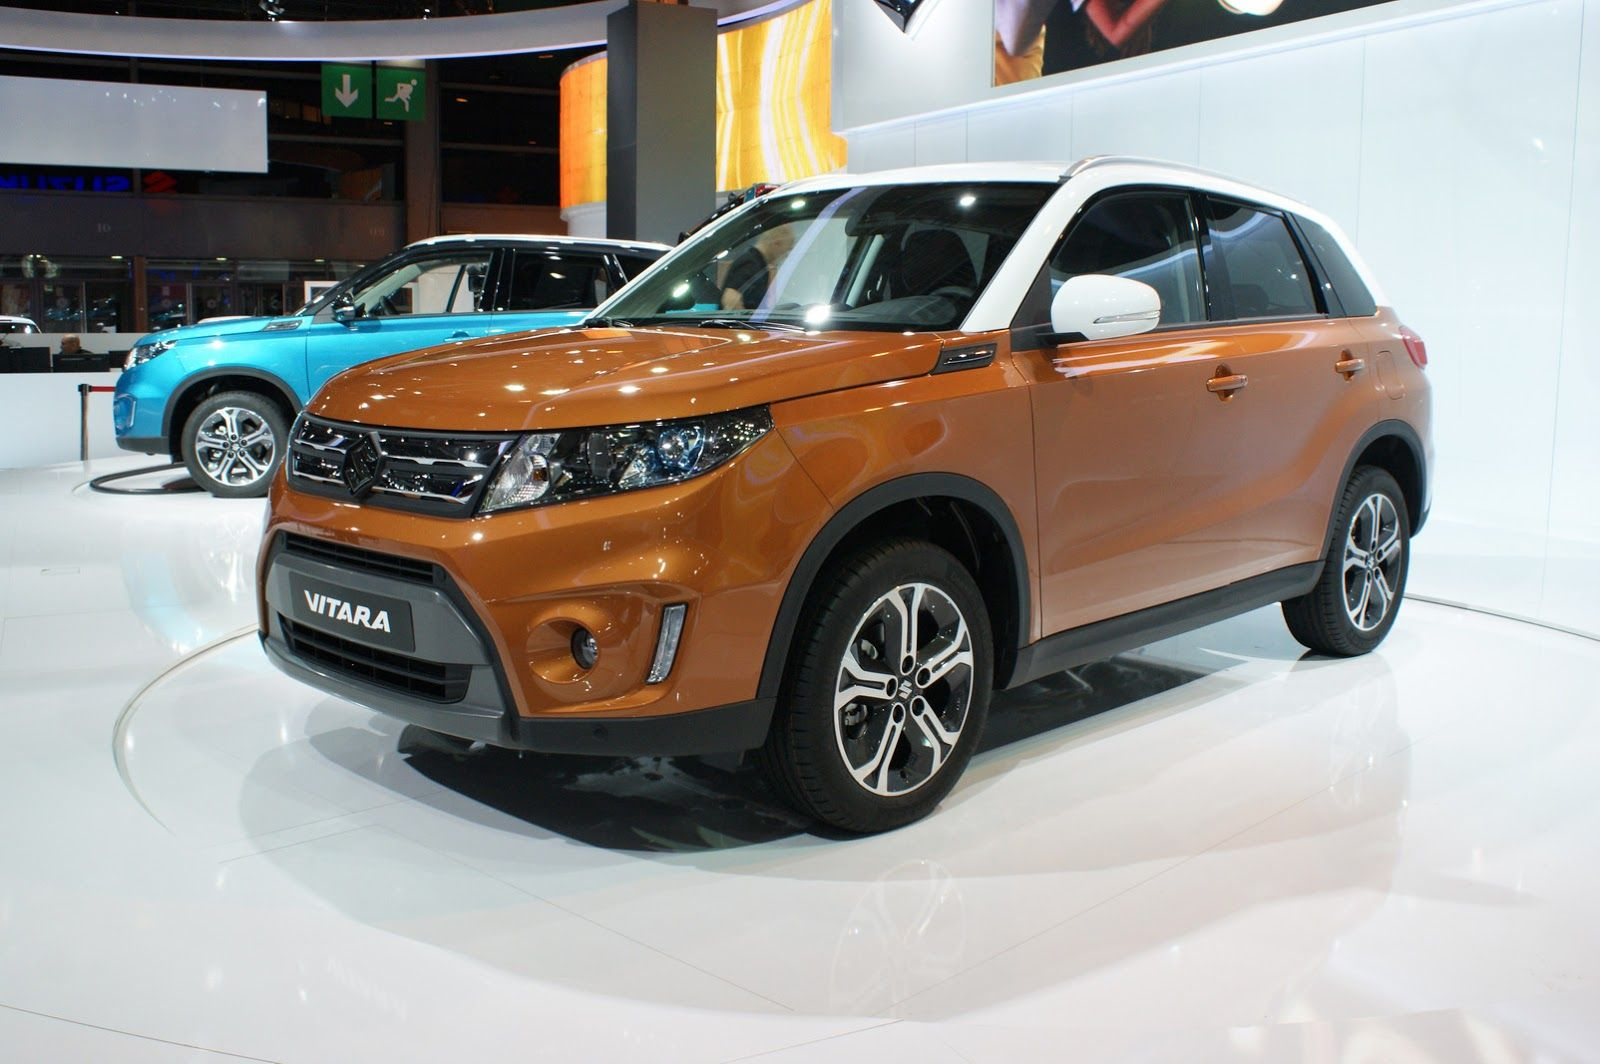 2015 suzuki vitara orange 2015suzukivitara car autos review suzuki car2015